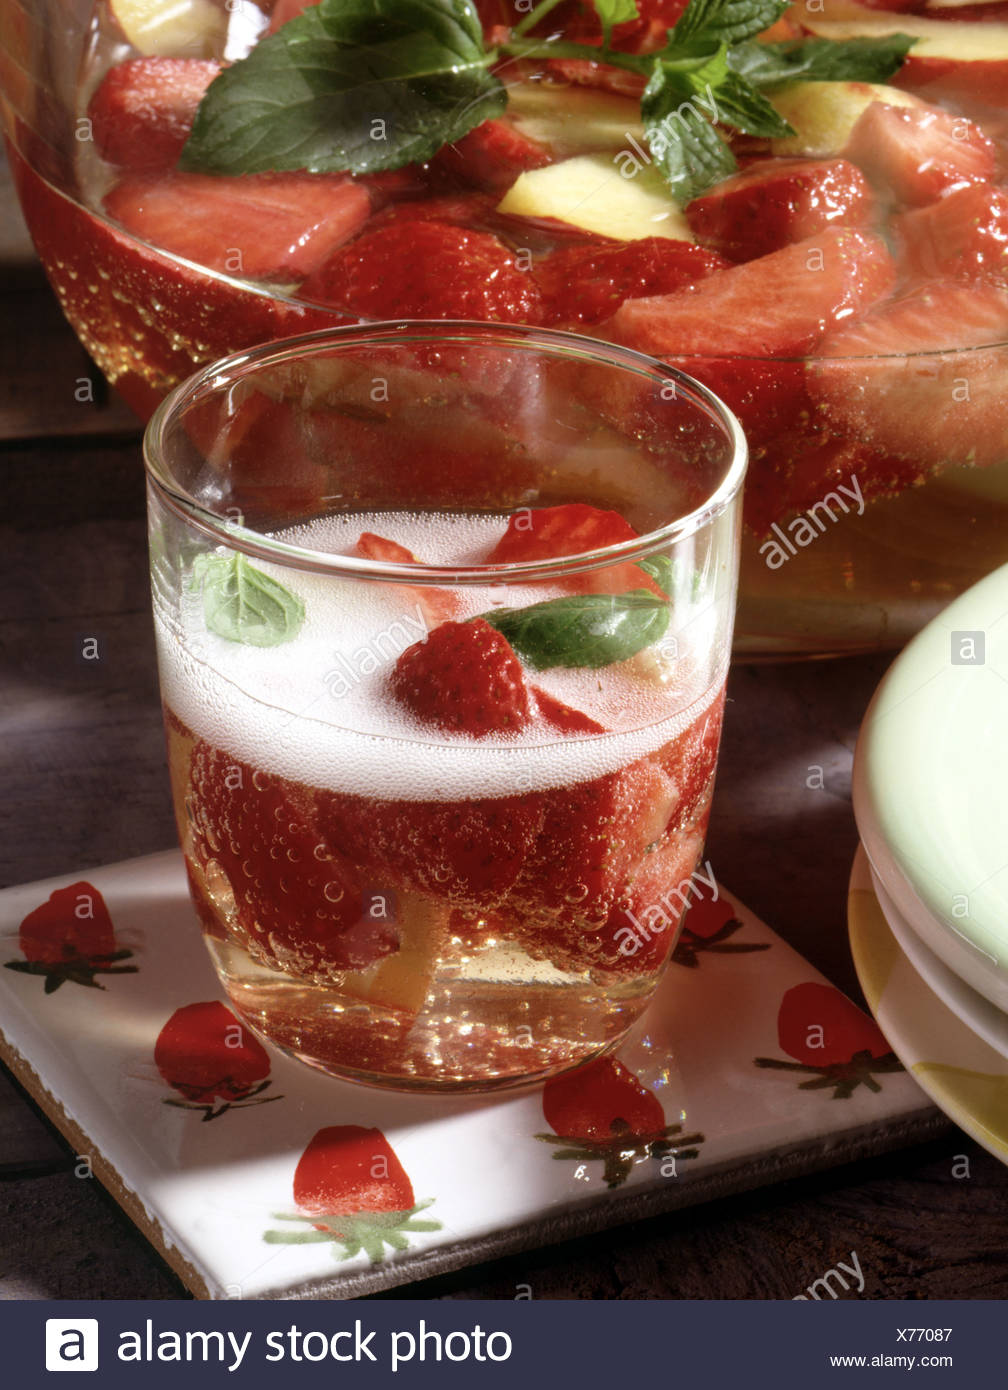 Strawberry Peach Wine Cooler Stock Photo 279822375 Alamy